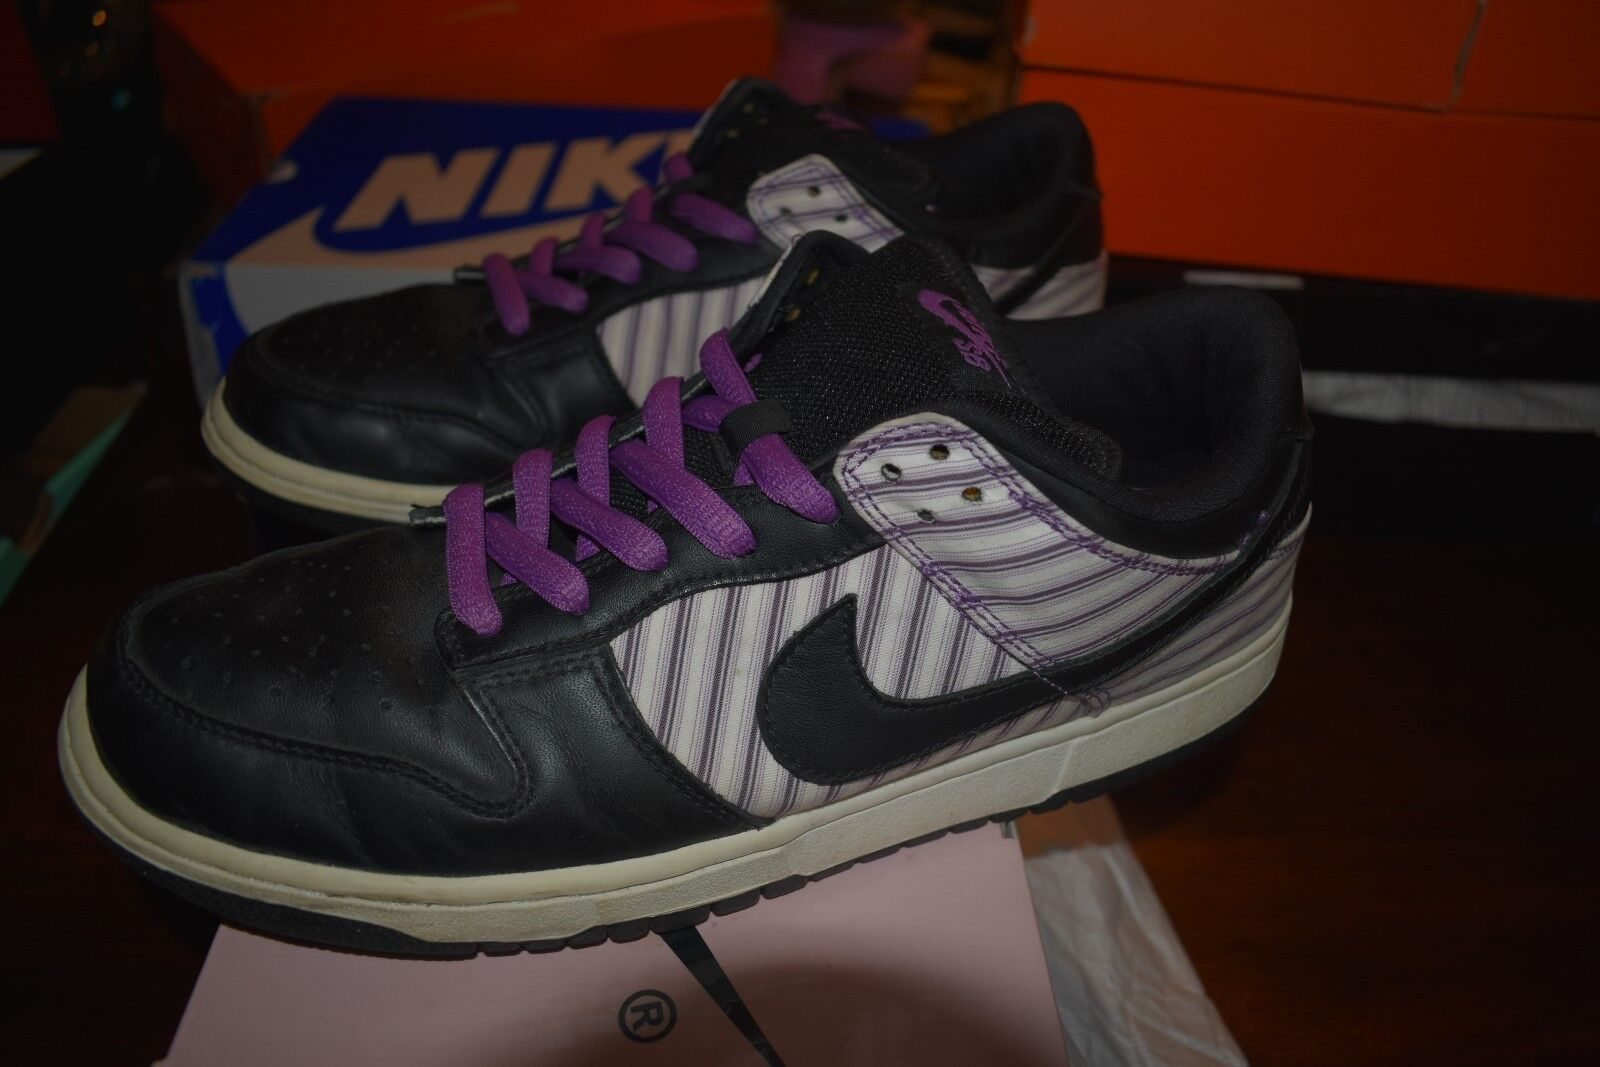 05 NIKE DUNK LOW PRO SB  Avenger Purple White/Black-Hyancinth 304292-101 sz10